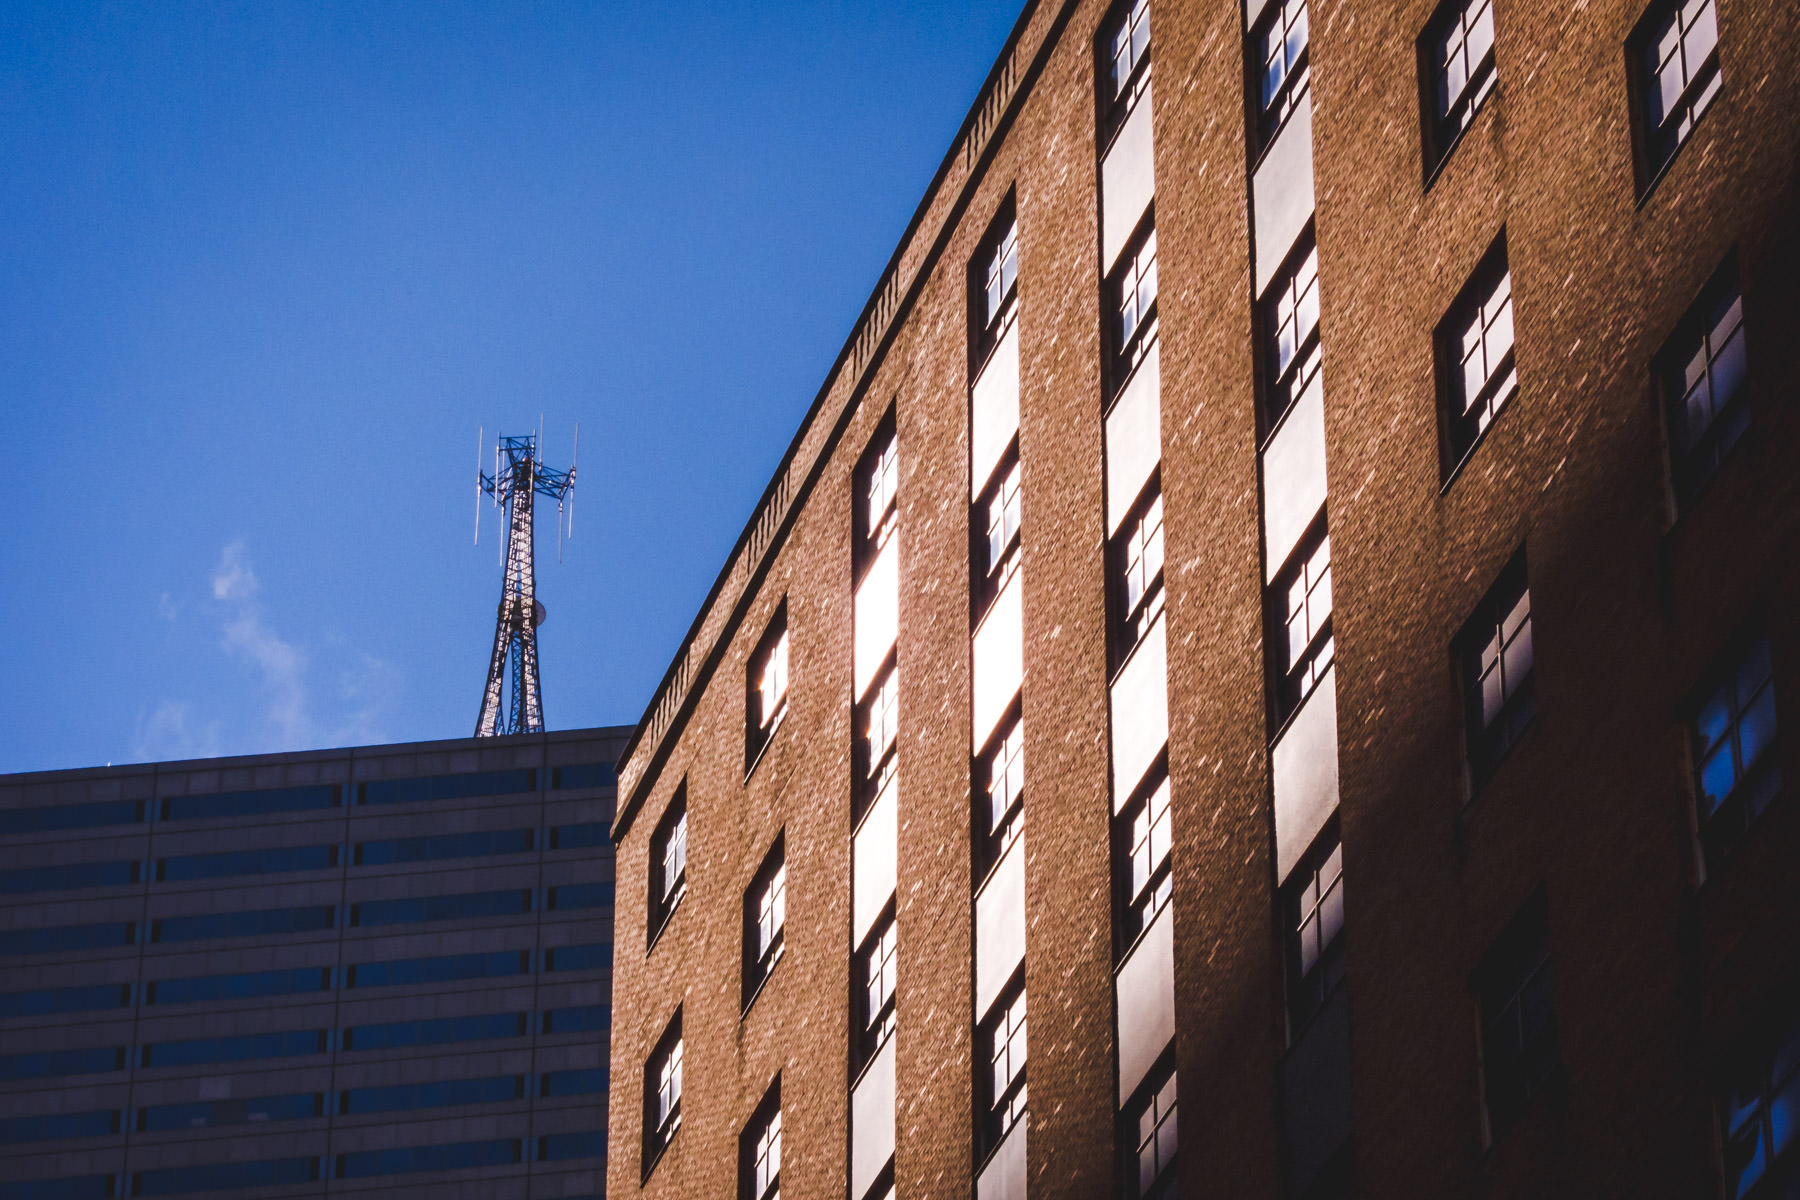 An uniquely-designed antenna tower peaks over the roof of Downtown Dallas' Energy Plaza.